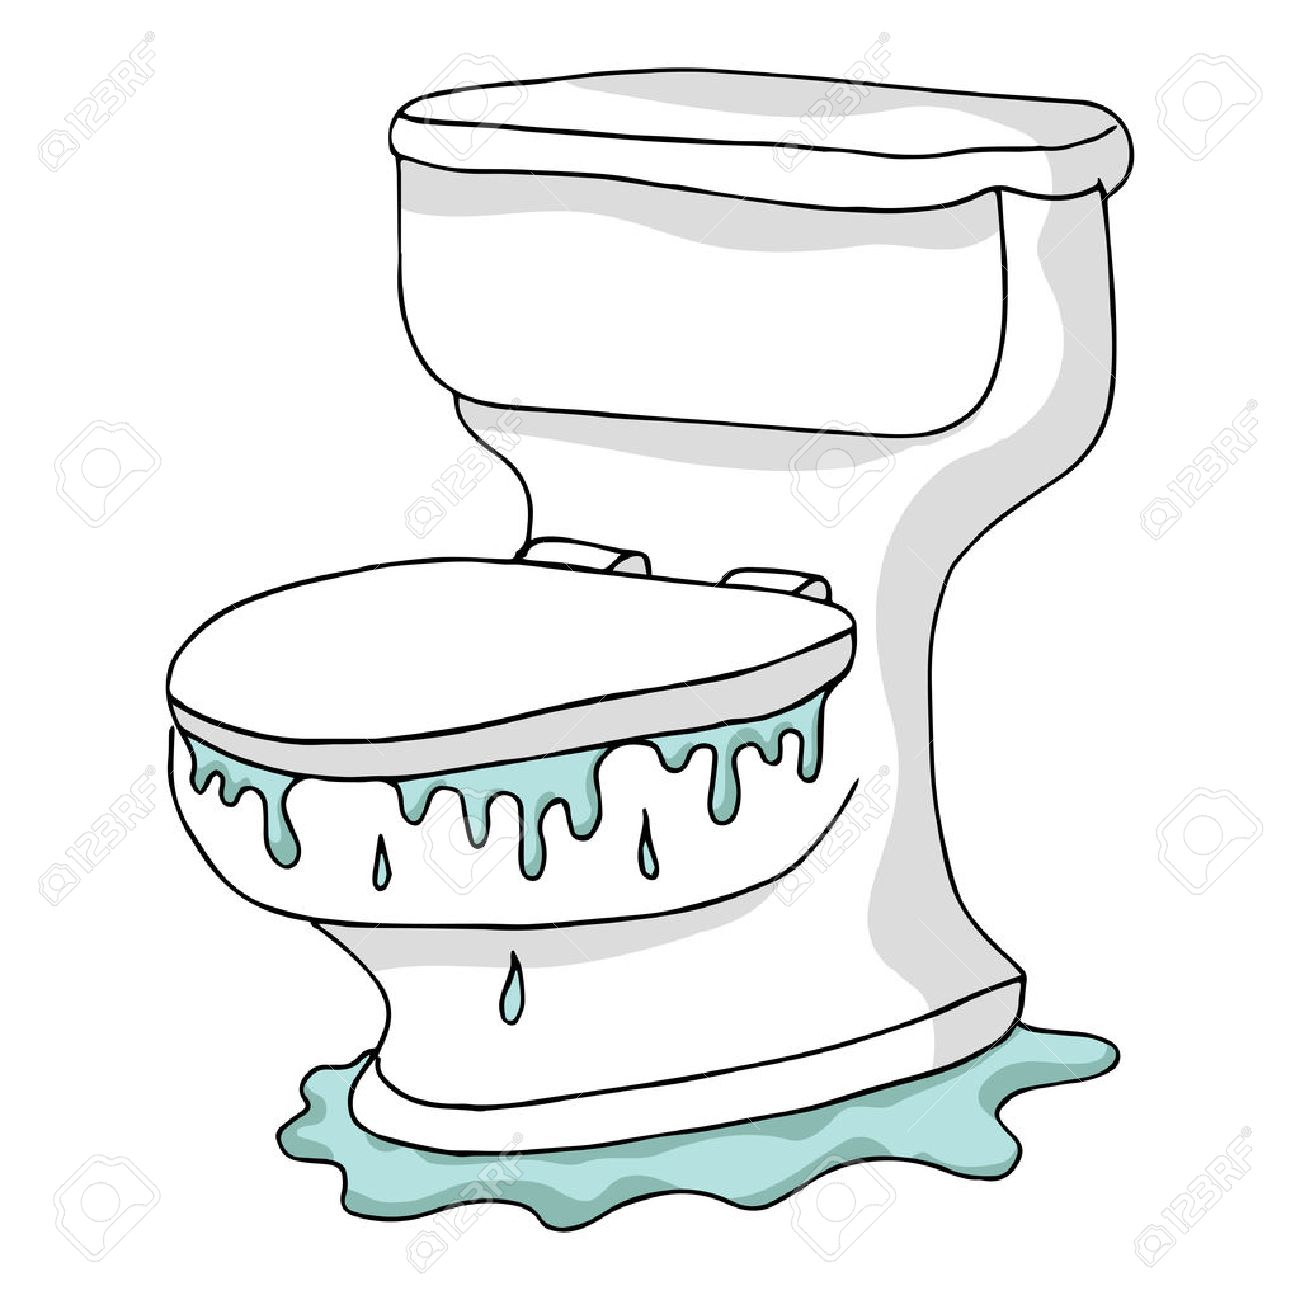 Image result for toilet overflow cartoon